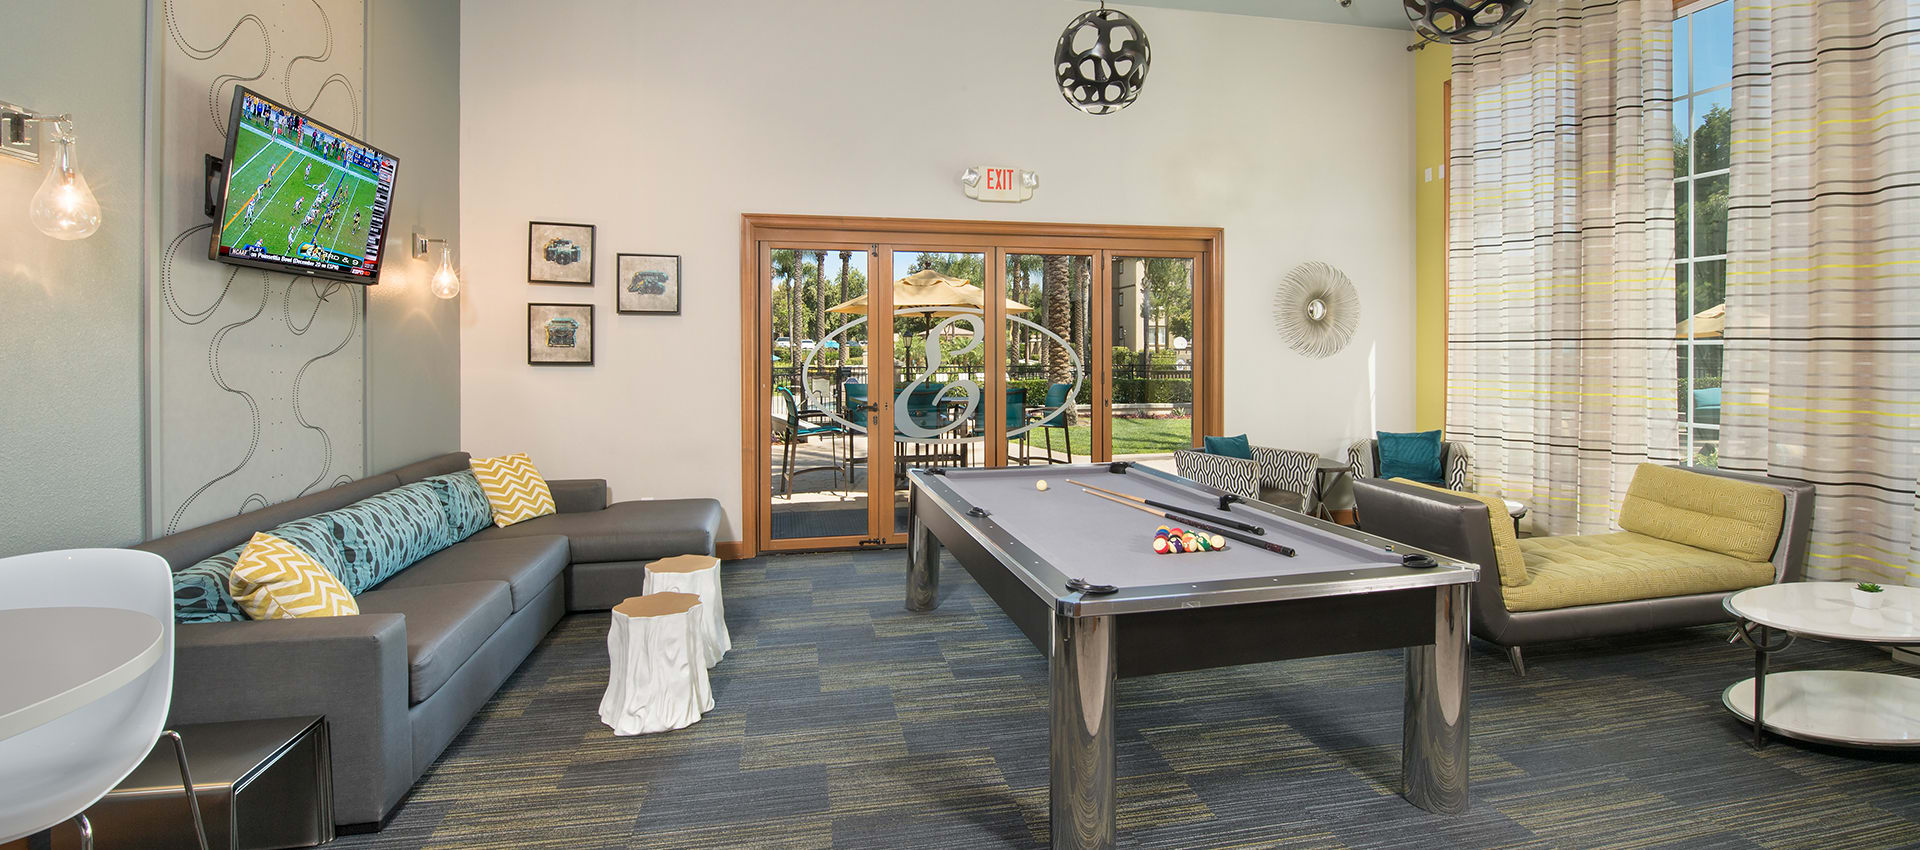 Clubhouse Pool Table at Esplanade Apartment Homes in Riverside, CA